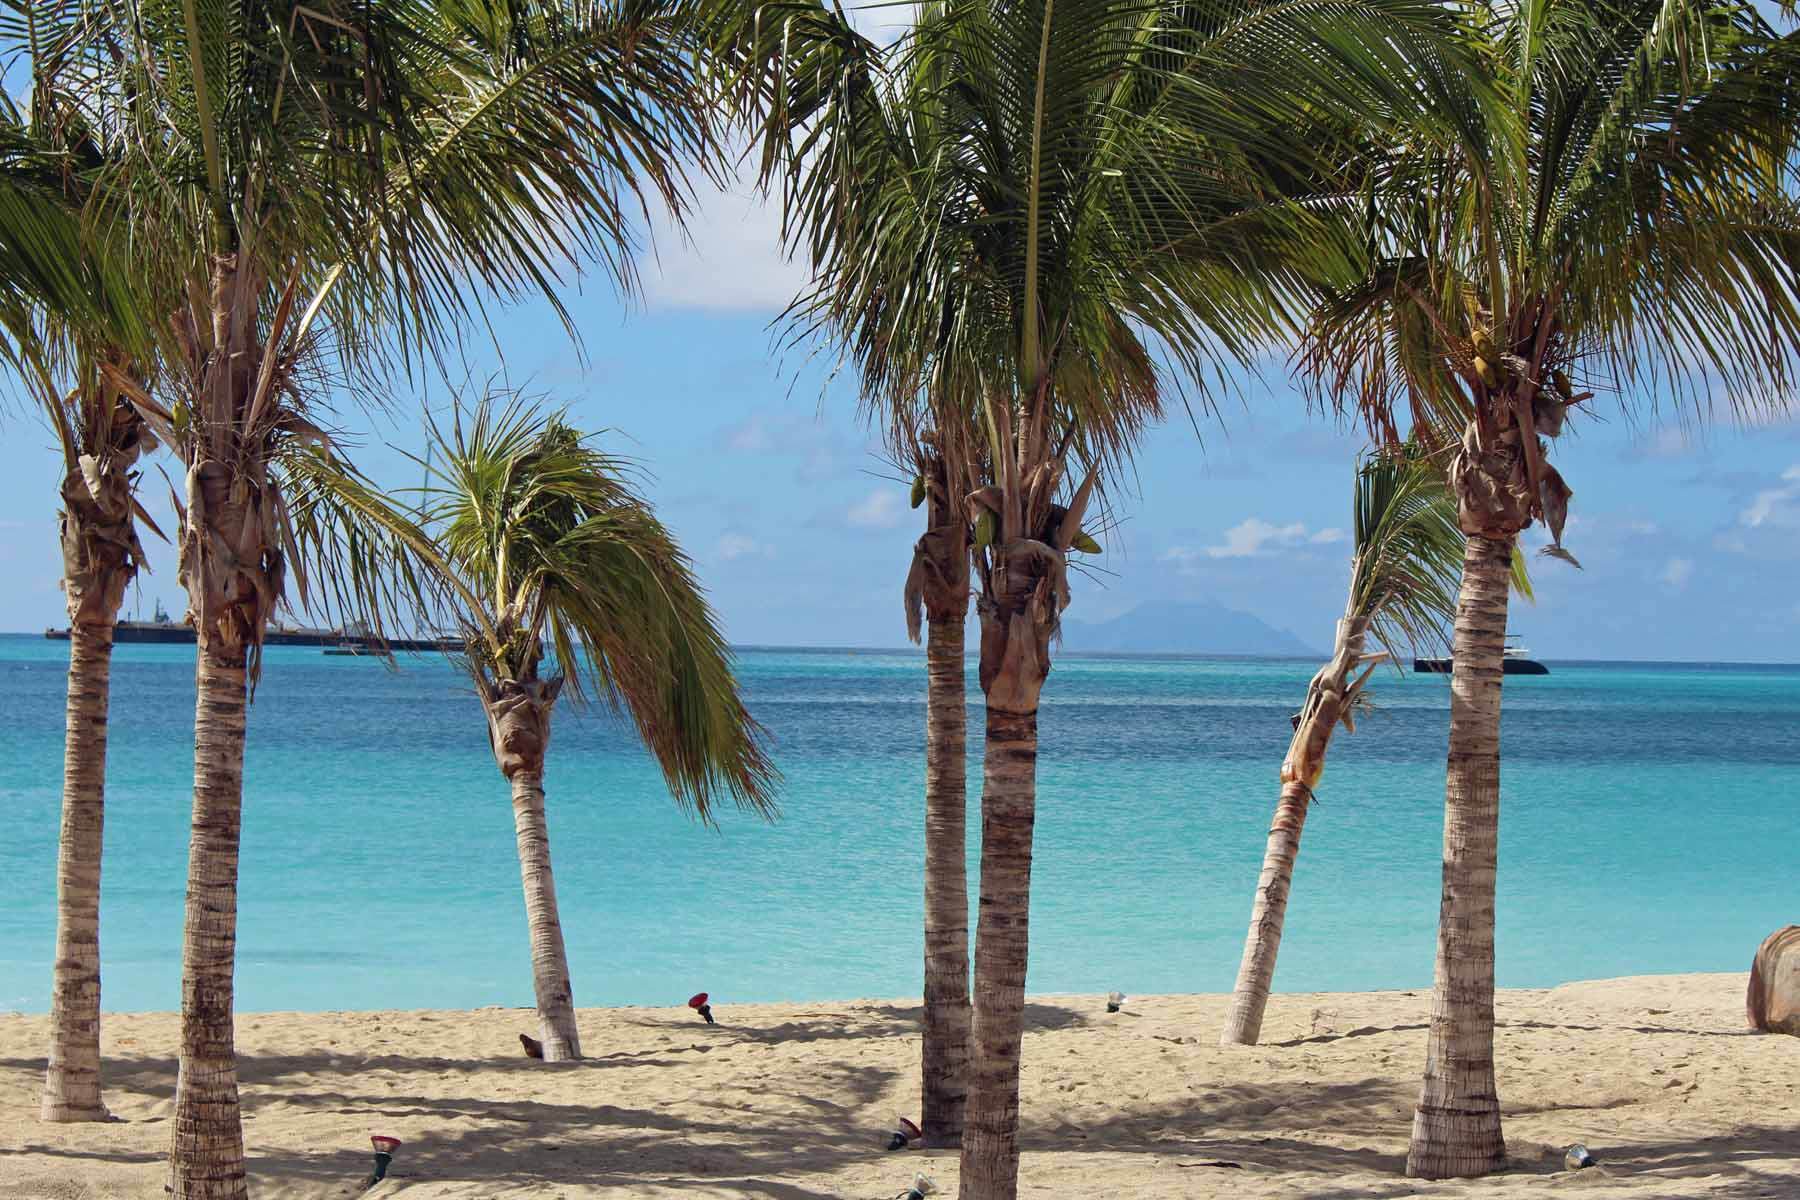 Saint-Martin island, Philispburg, beach, palm tree